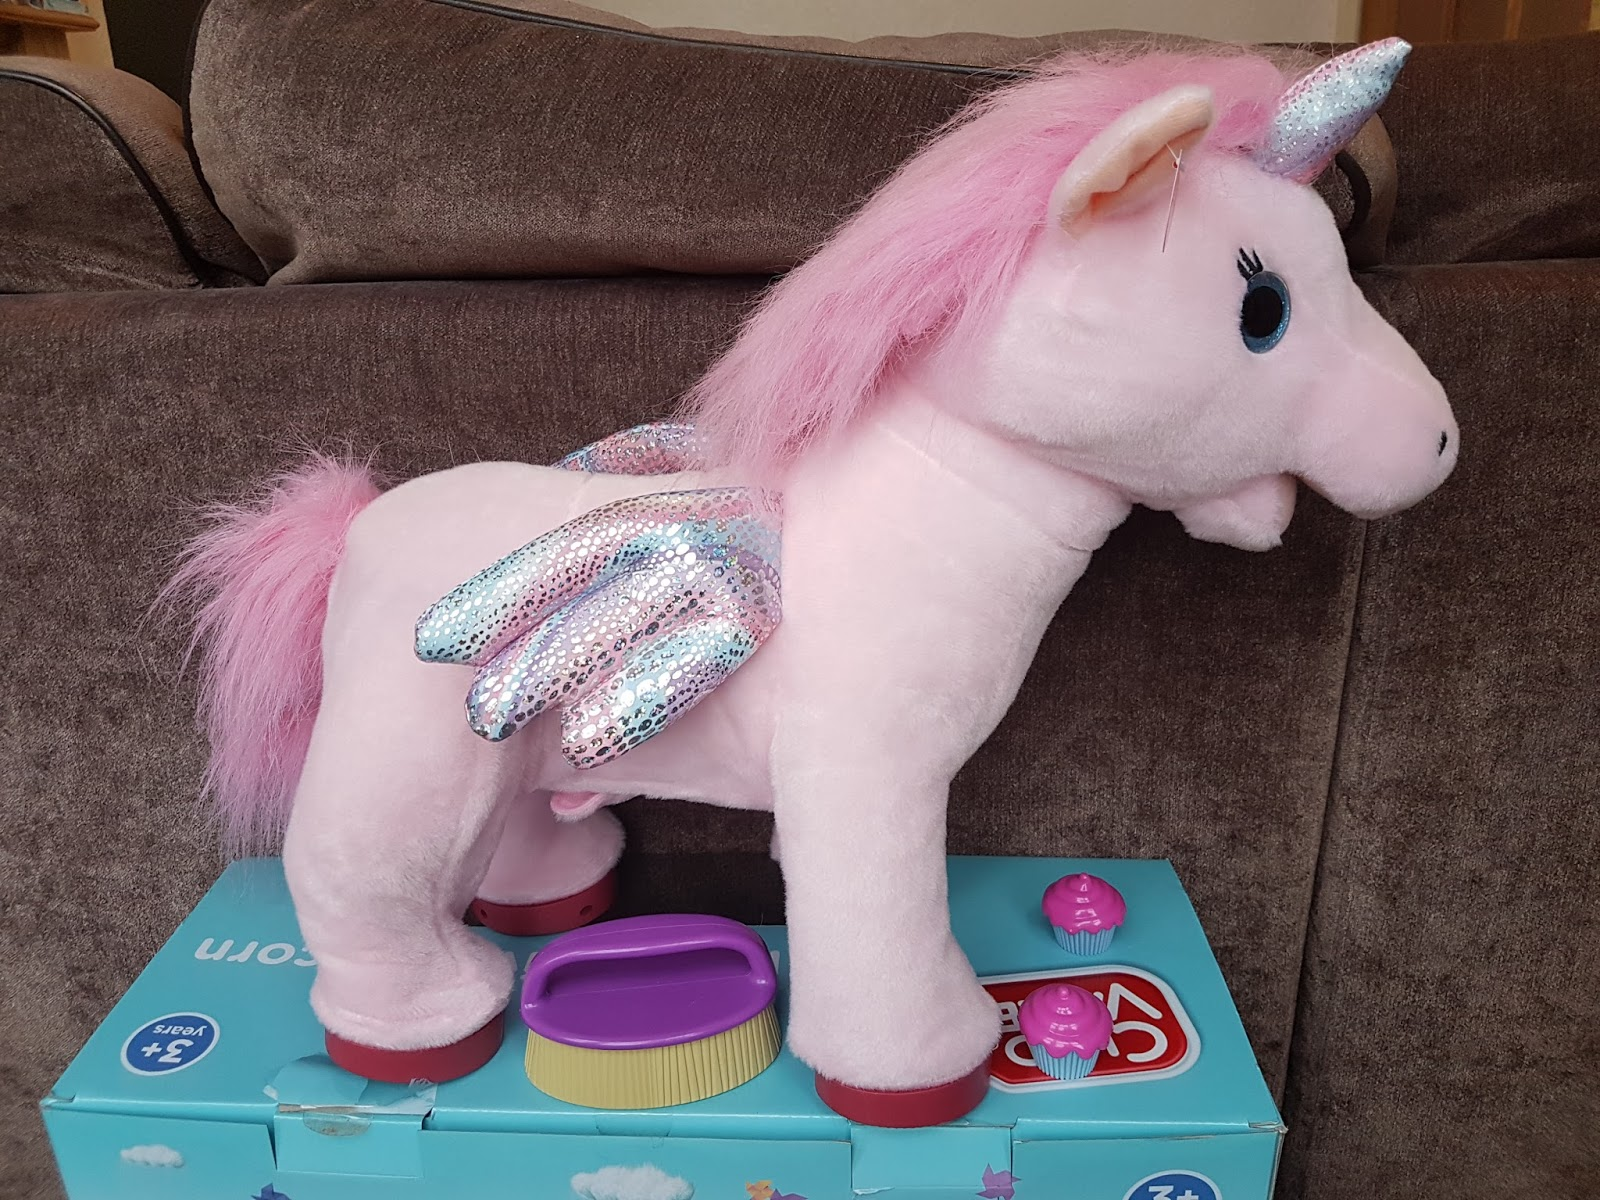 Lily Loves Her Sparkly Unicorn Horn And Magical Glittery Wings Cupcake Has A Beautiful Pink Mane Tail Which Is Great Fun To Brush